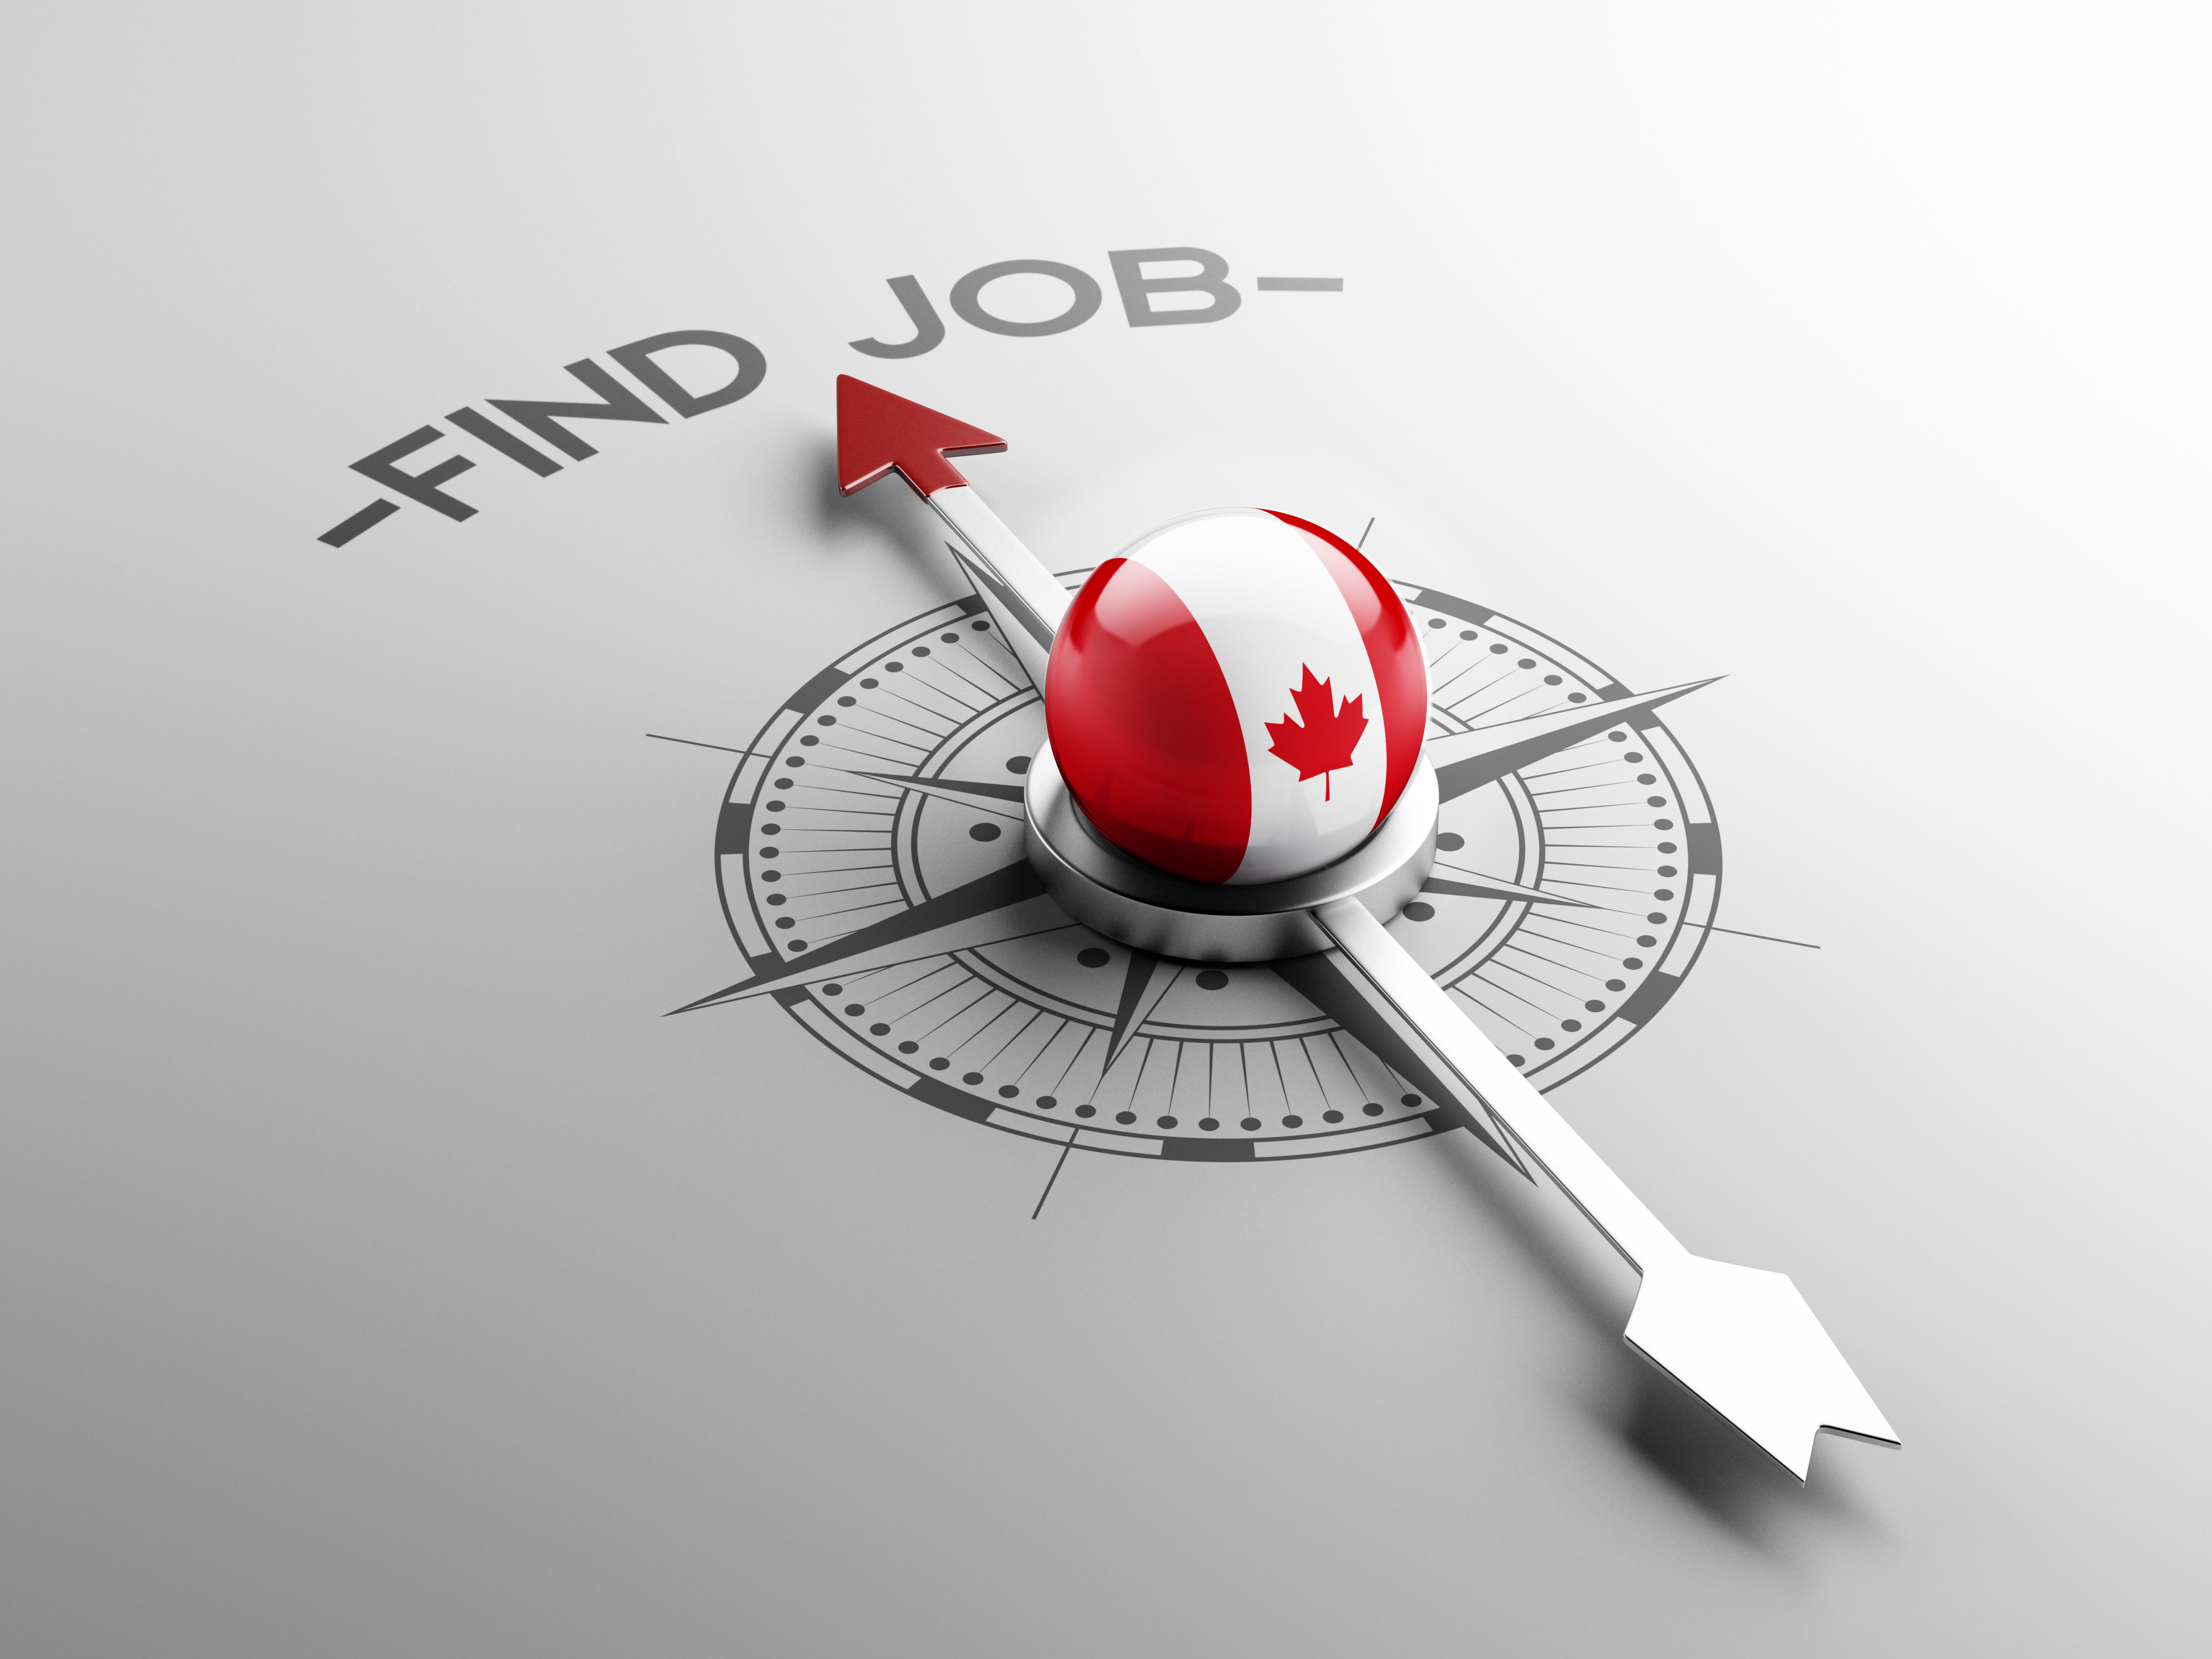 7 best NOC codes to get work in Canada in 2019